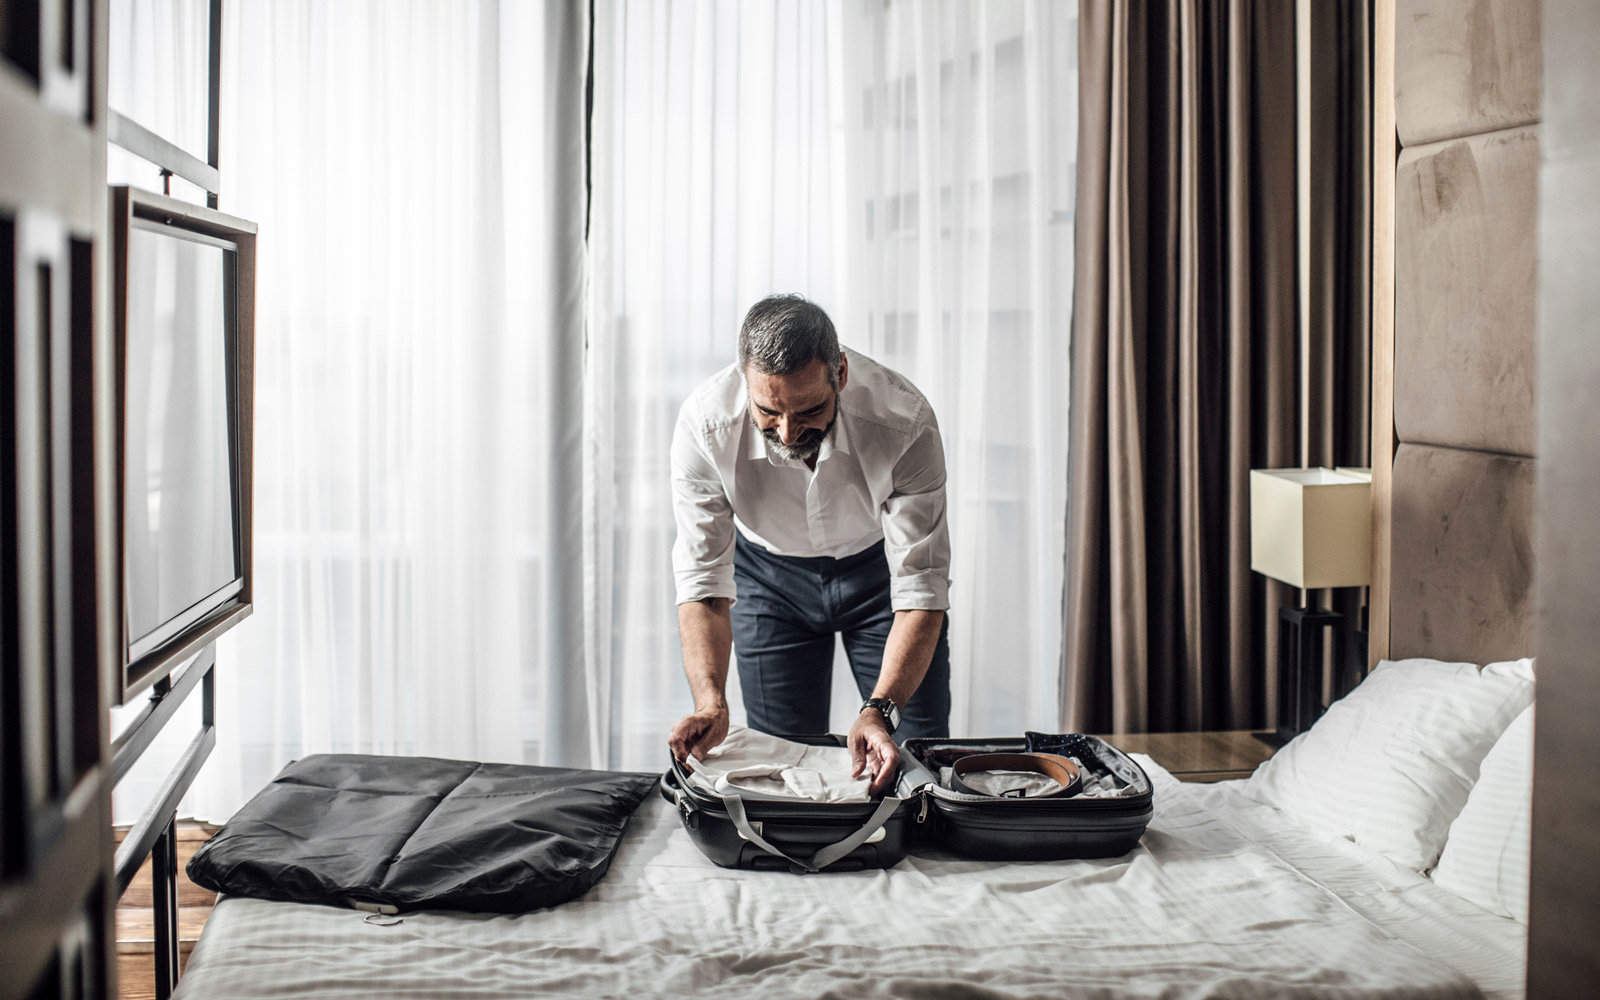 Man Packing a Garment Bag